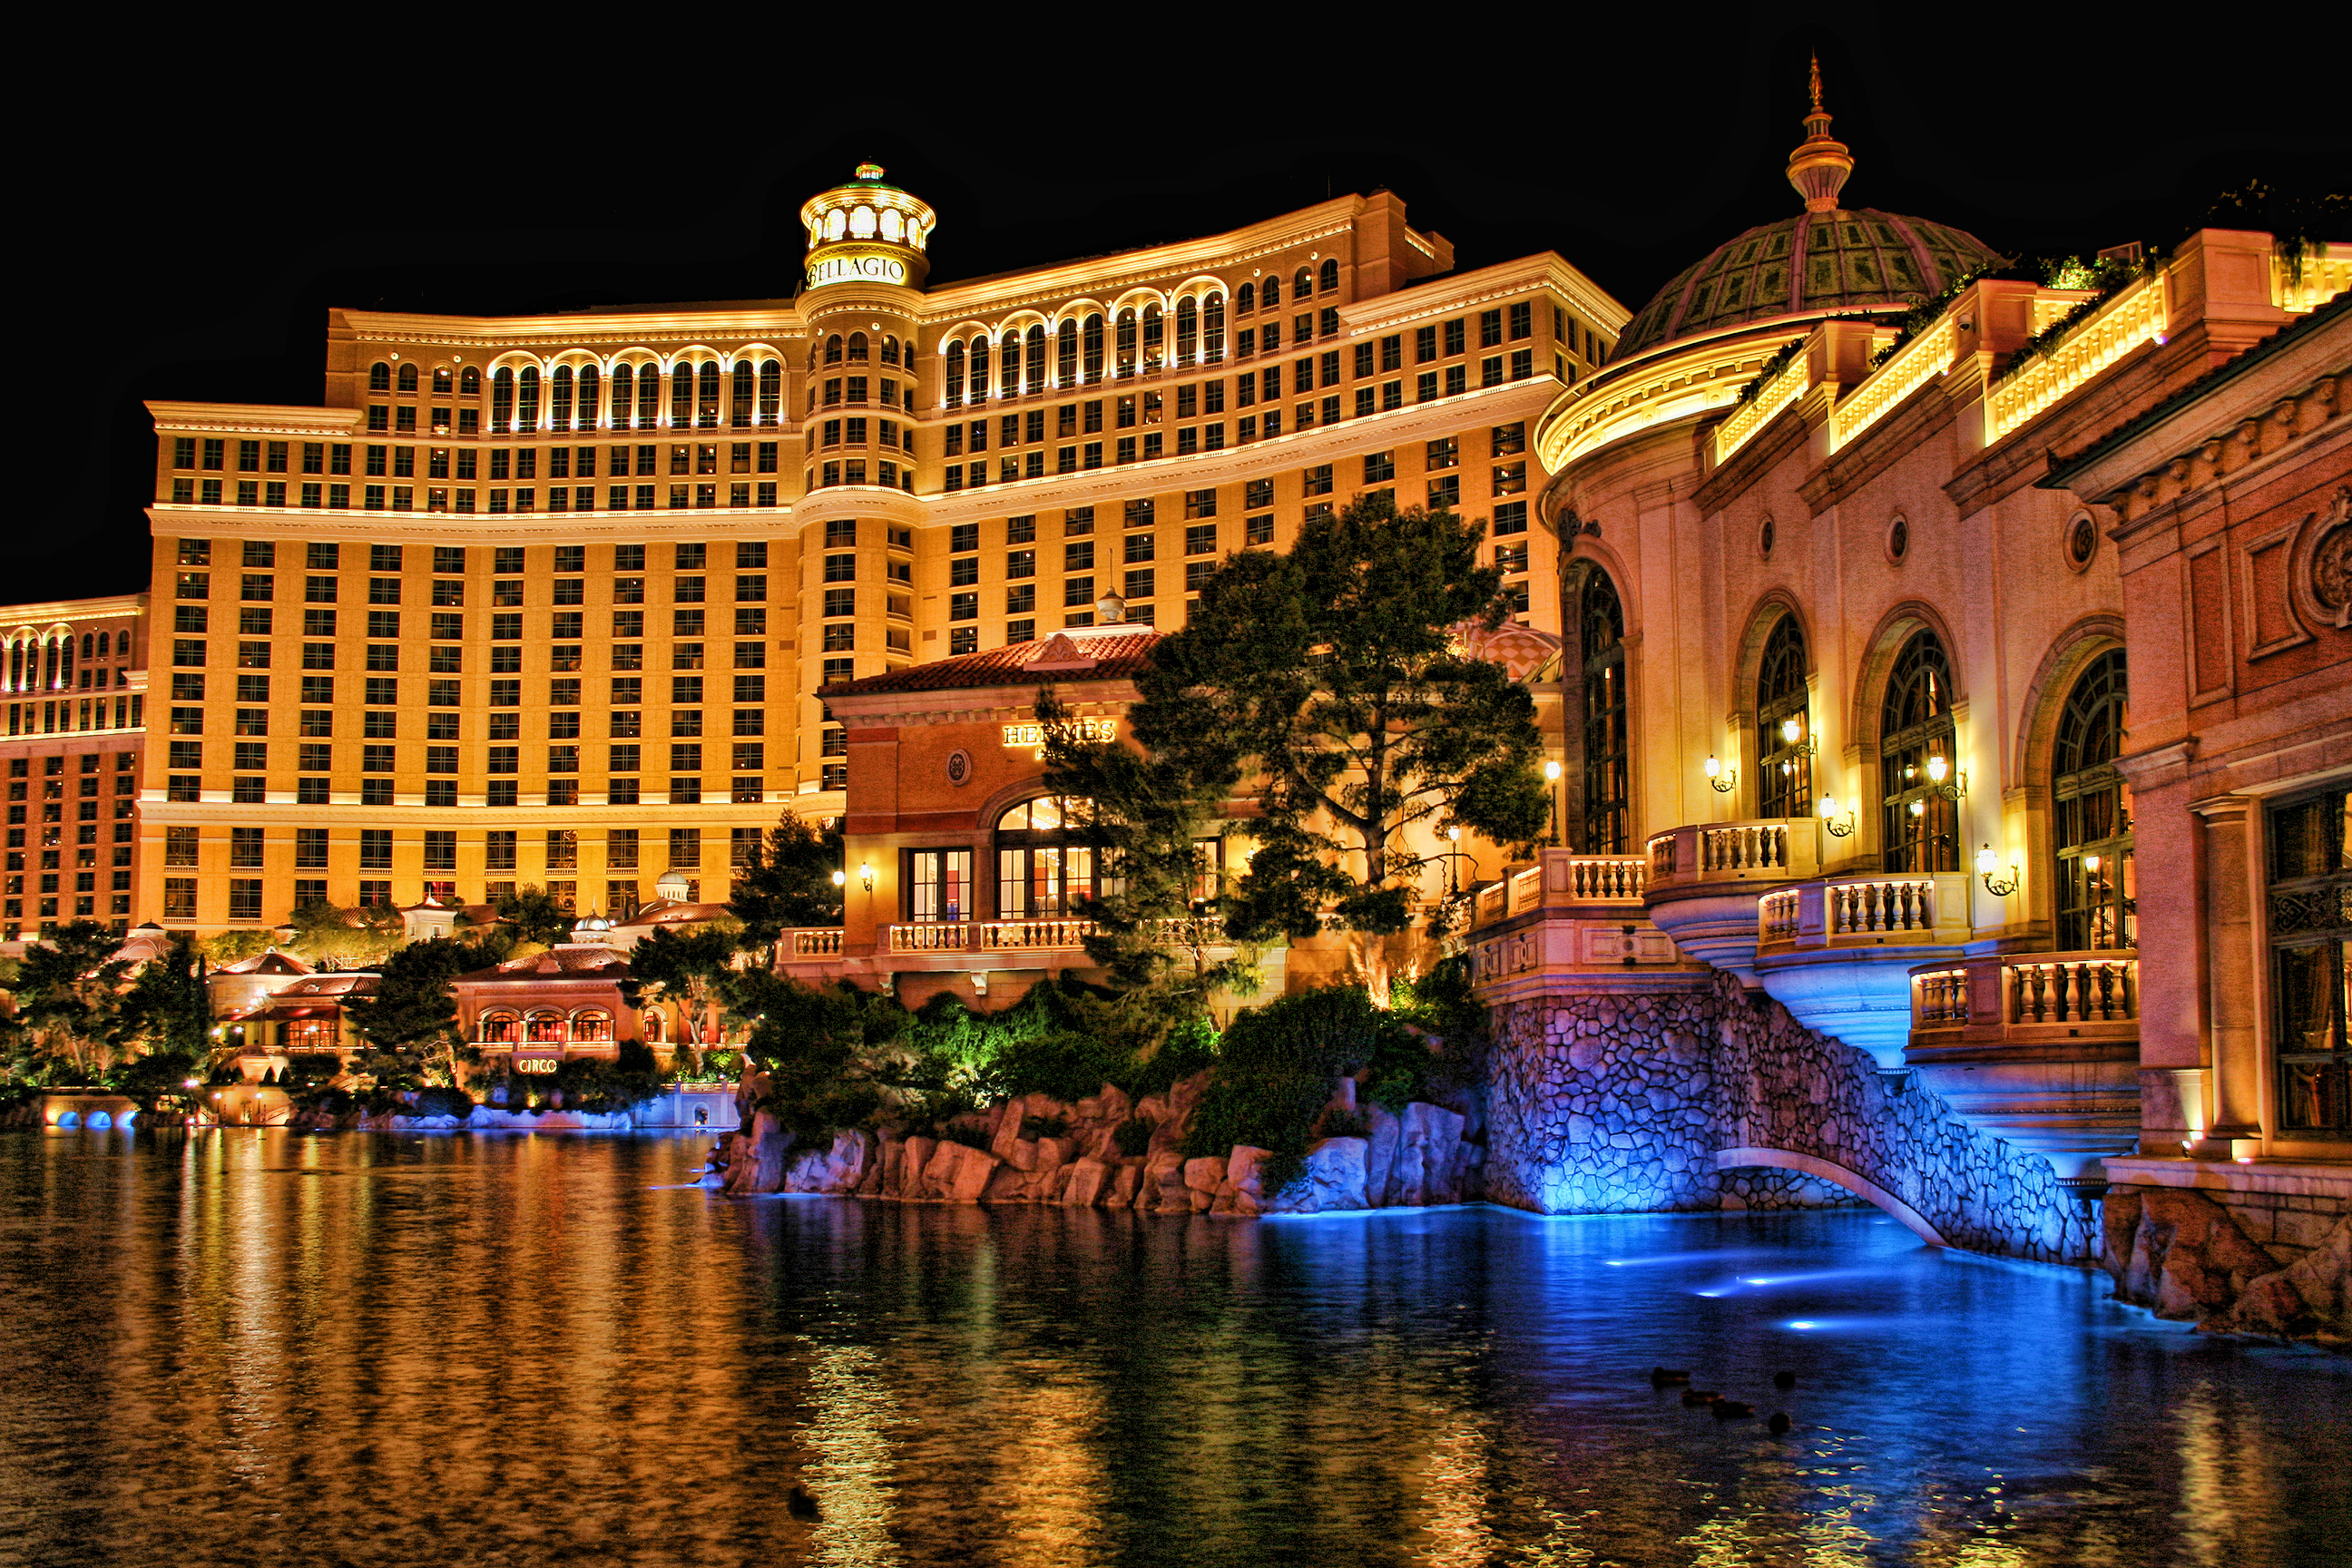 The bellagio renato scene collection 3